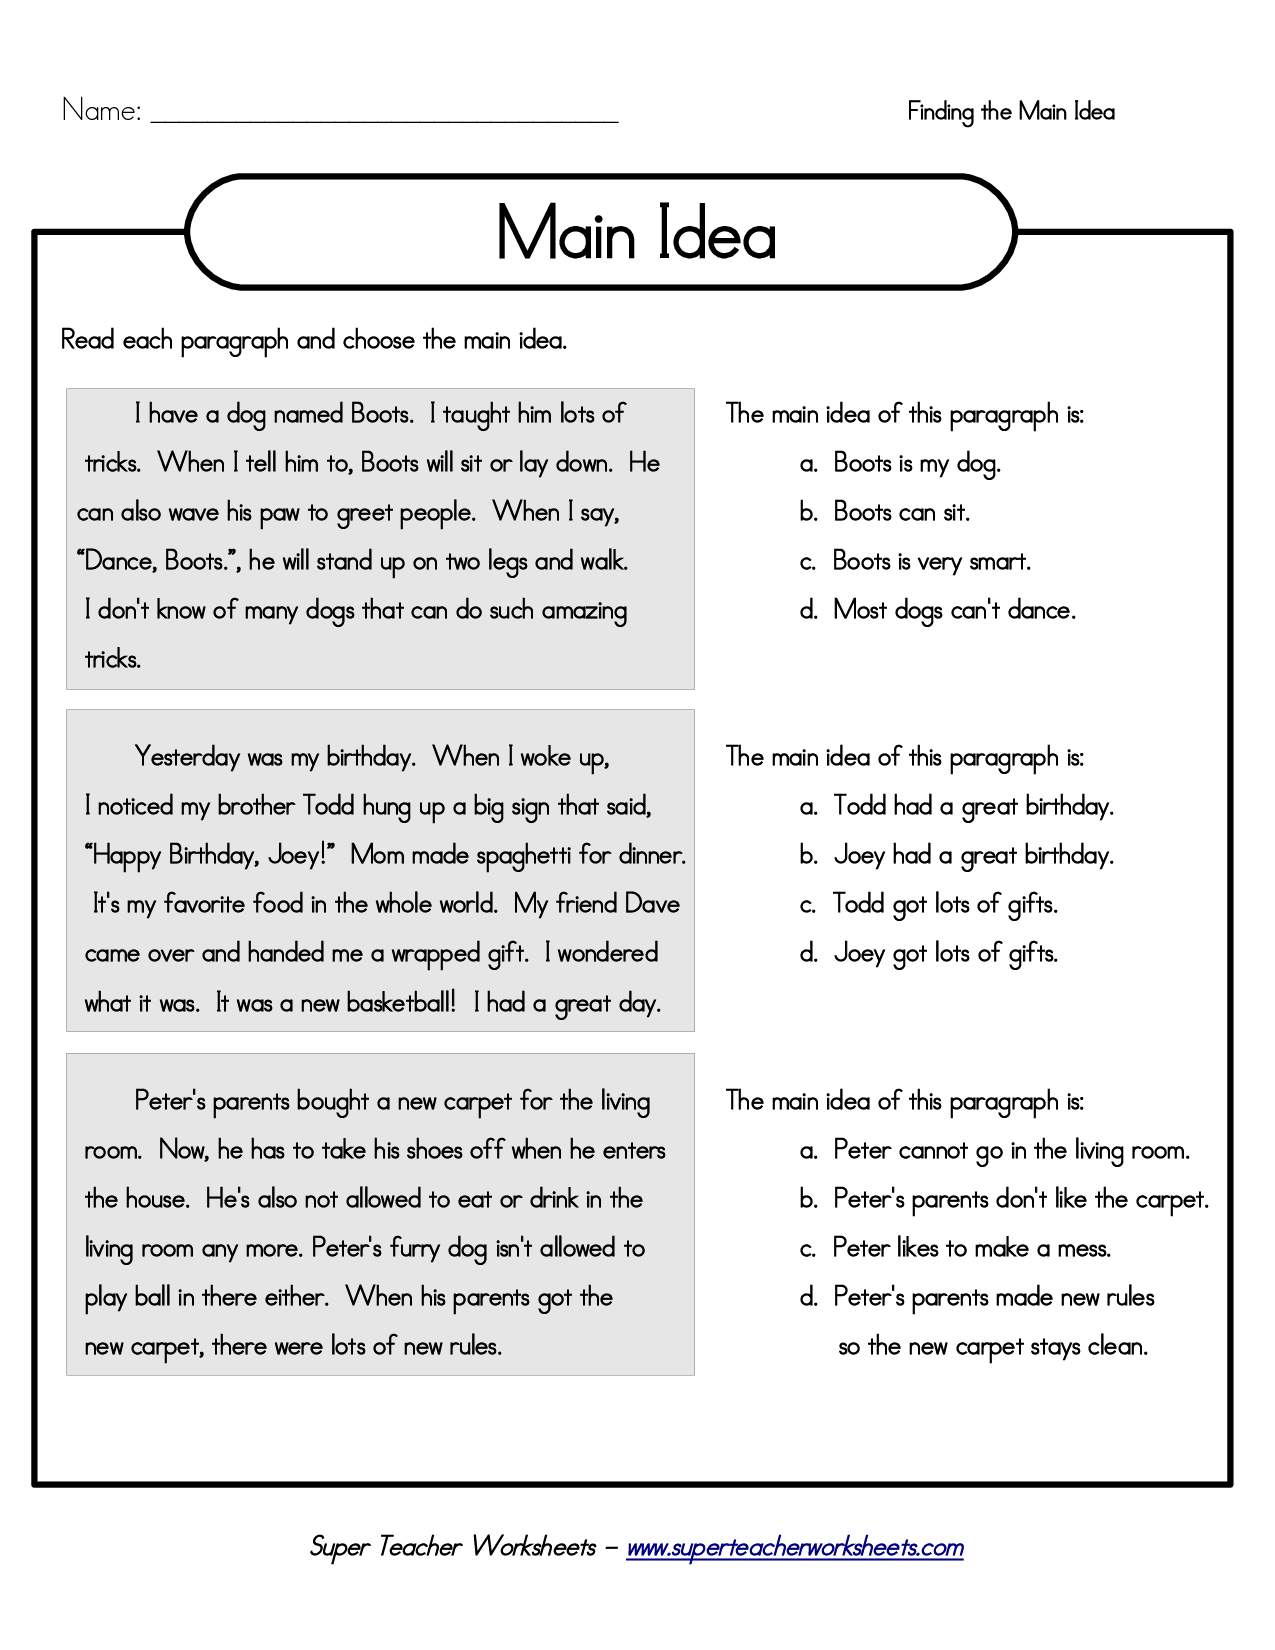 Main Idea Worksheets Pdf - Thimothy Worksheet